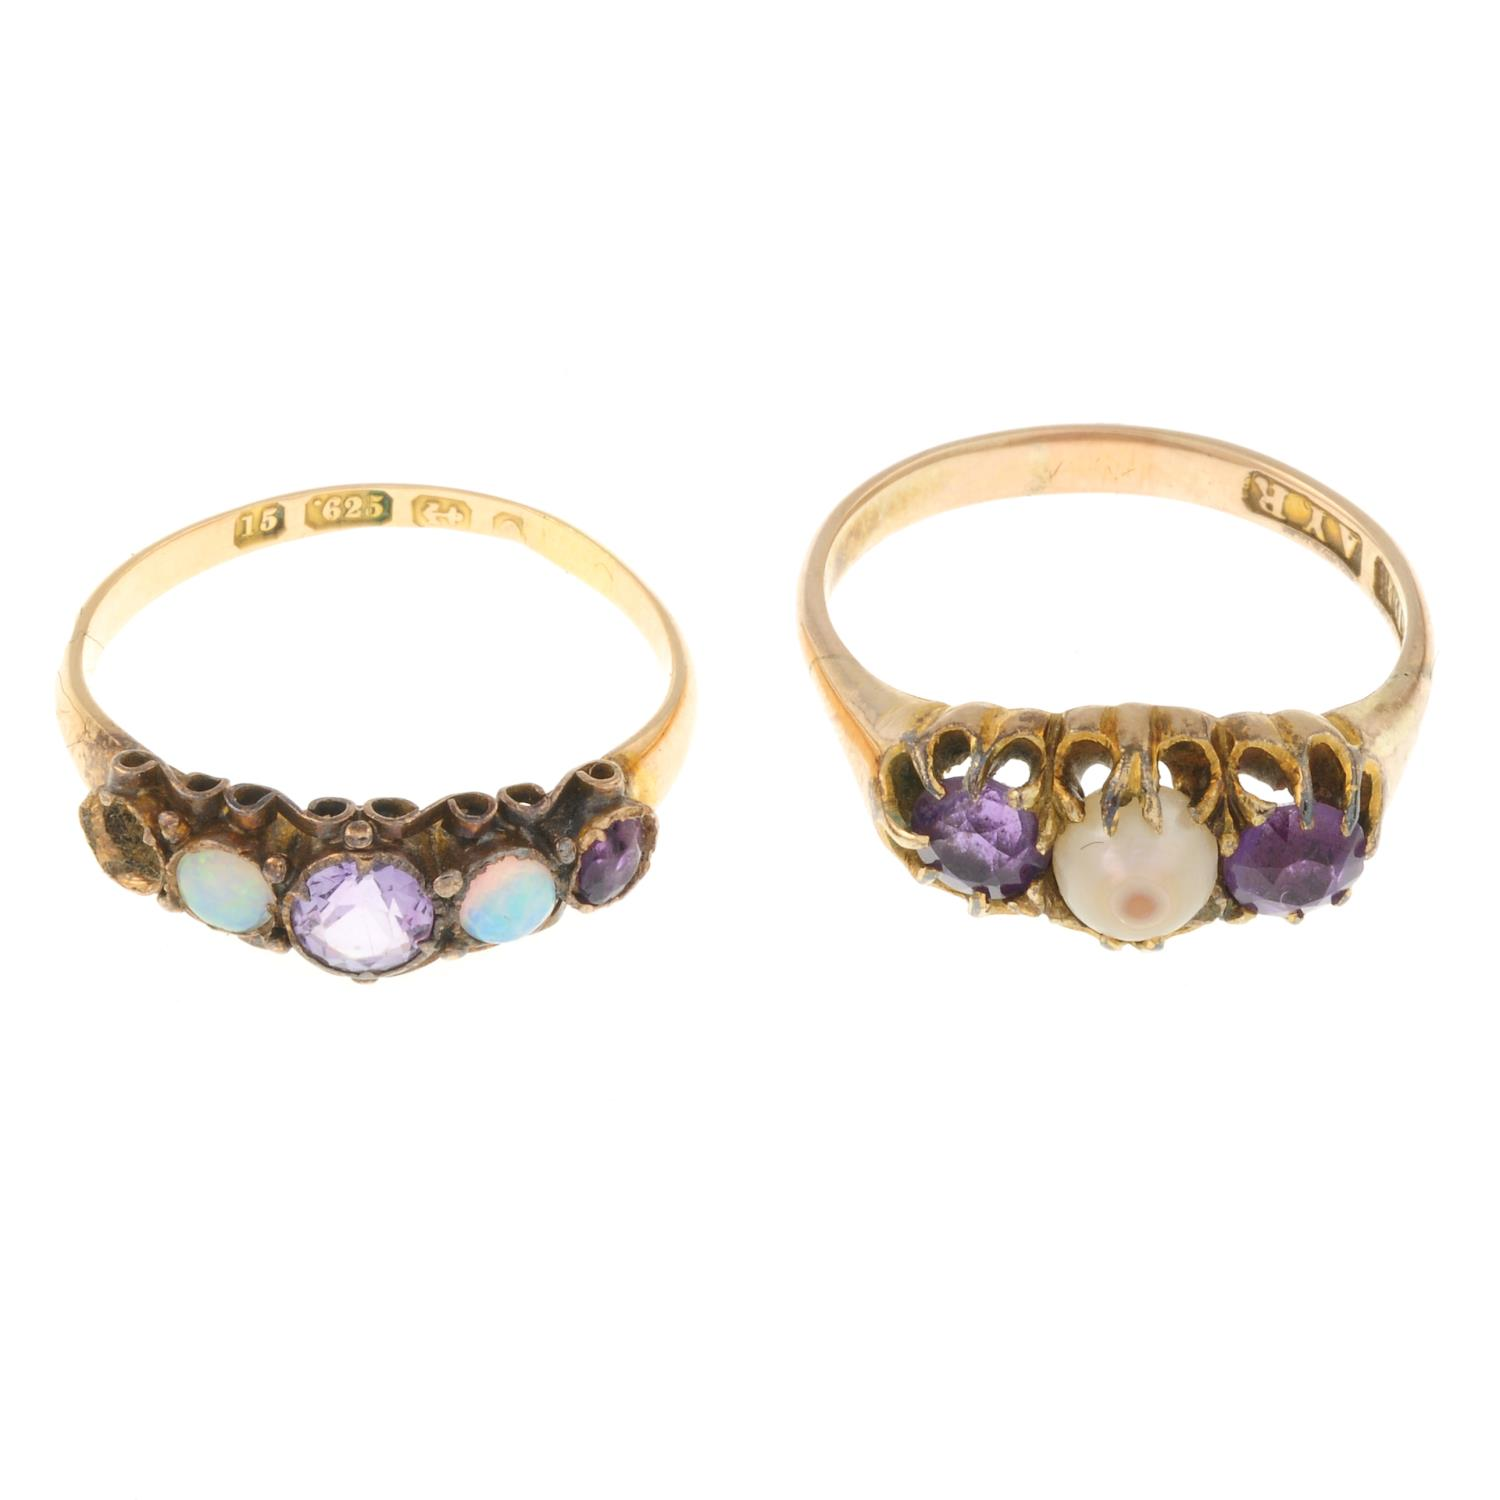 An 15ct gold amethyst and opal ring and an amethyst and cultured pearl ring.